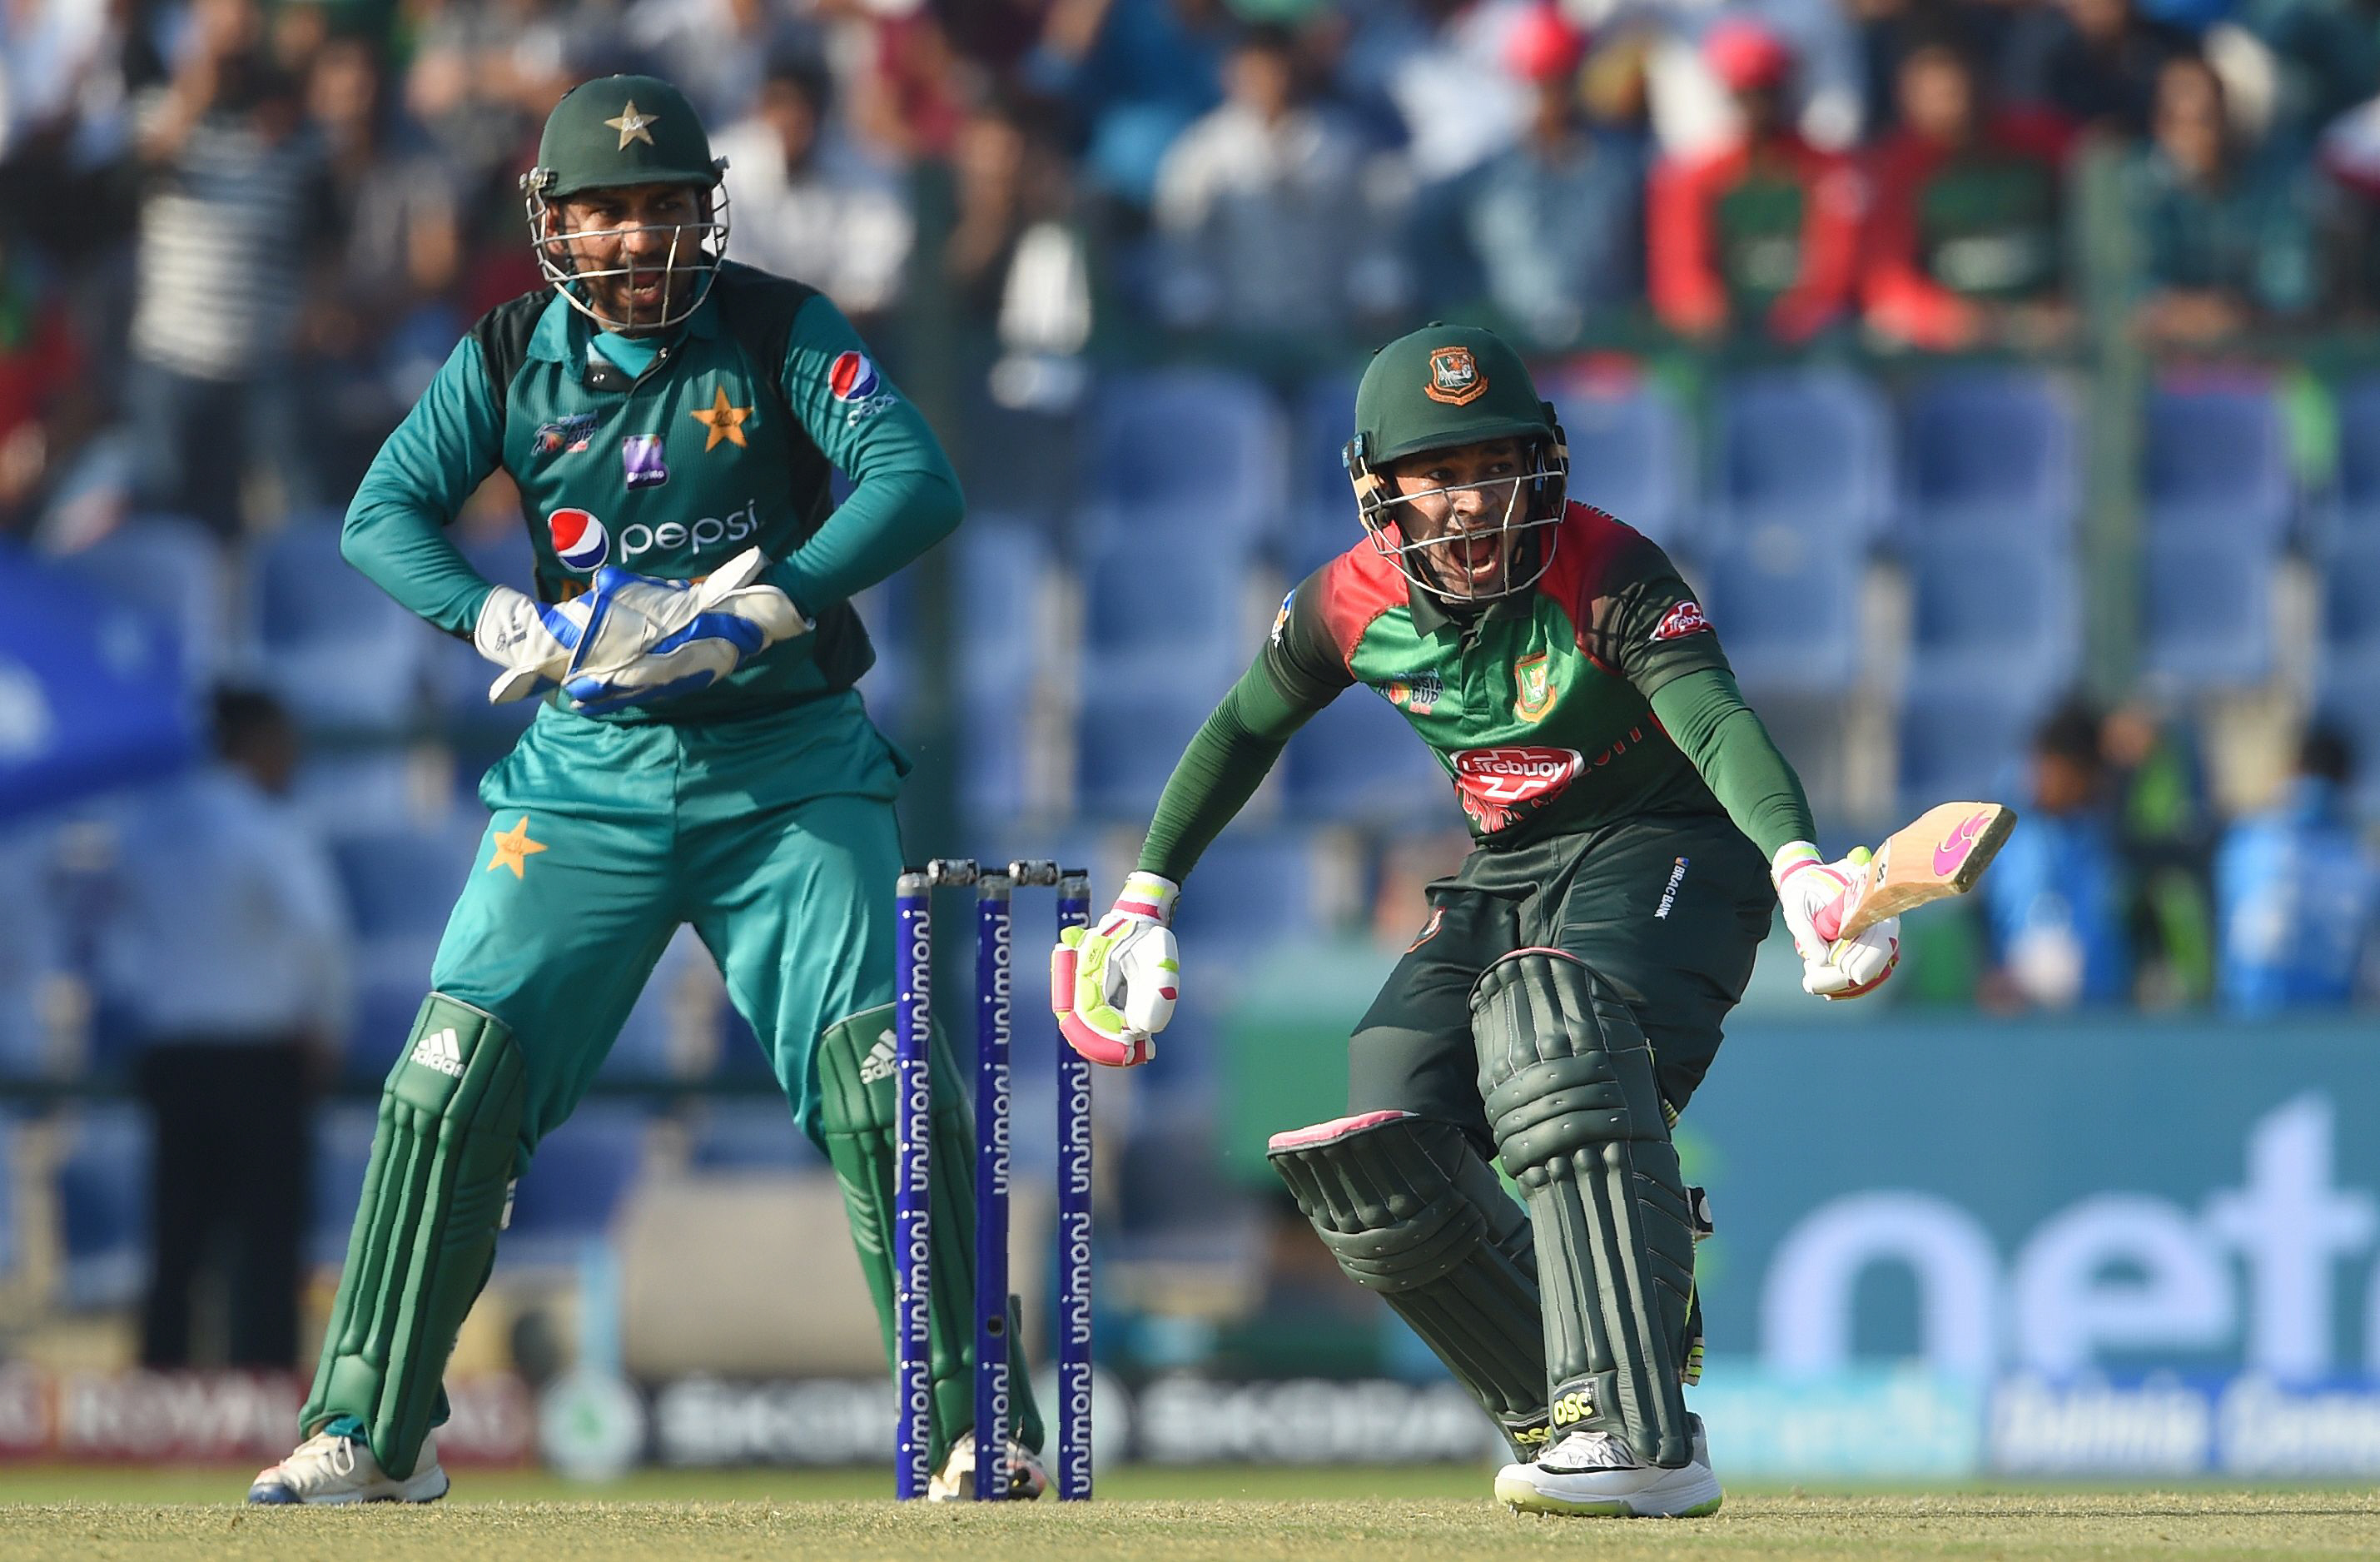 Bangladesh batsman Mushfiqur Rahim (R) reacts as Pakistan captain Sarfraz Ahmed (L) looks on during the one day international (ODI) Asia Cup cricket match